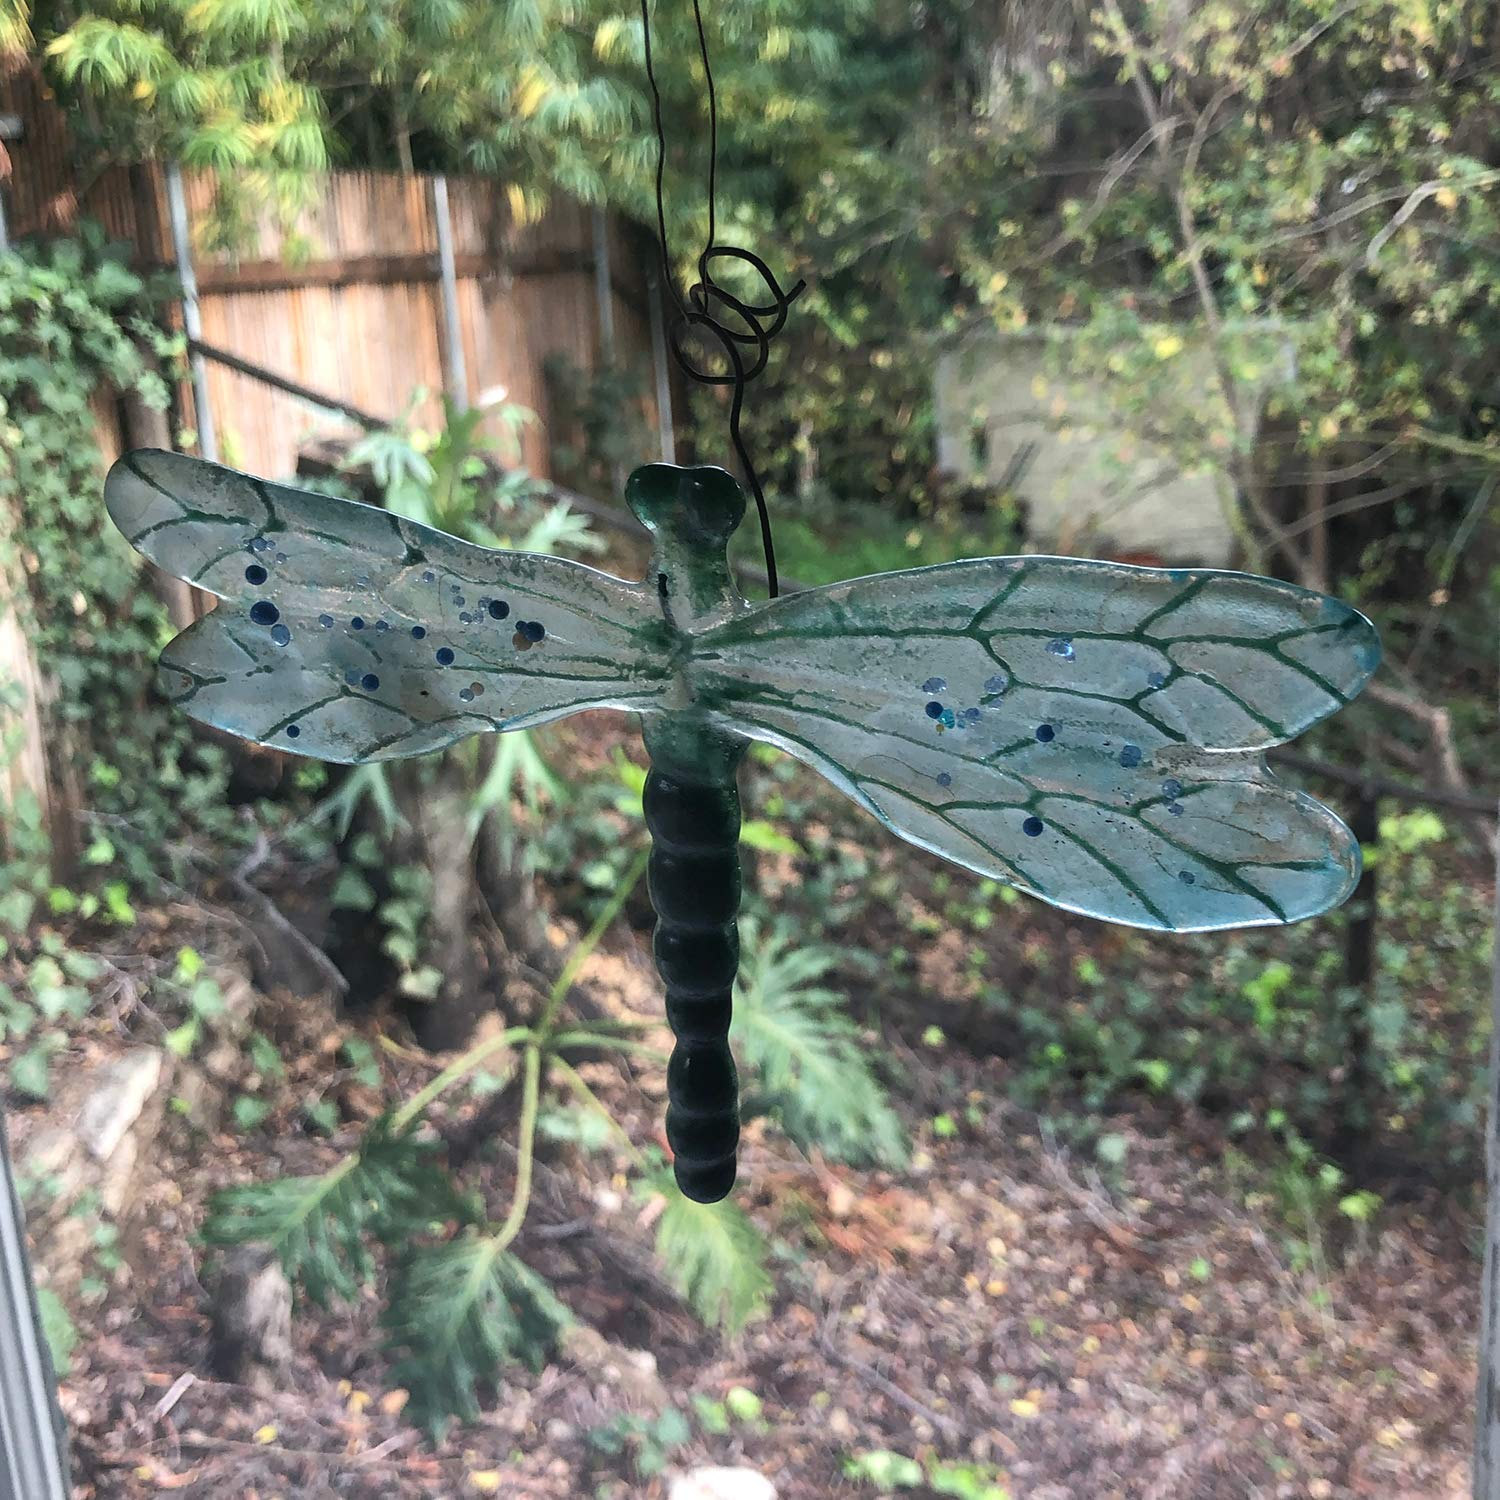 Wedding Present Iridescent Garden Decor Glass Dragonfly suncatcher